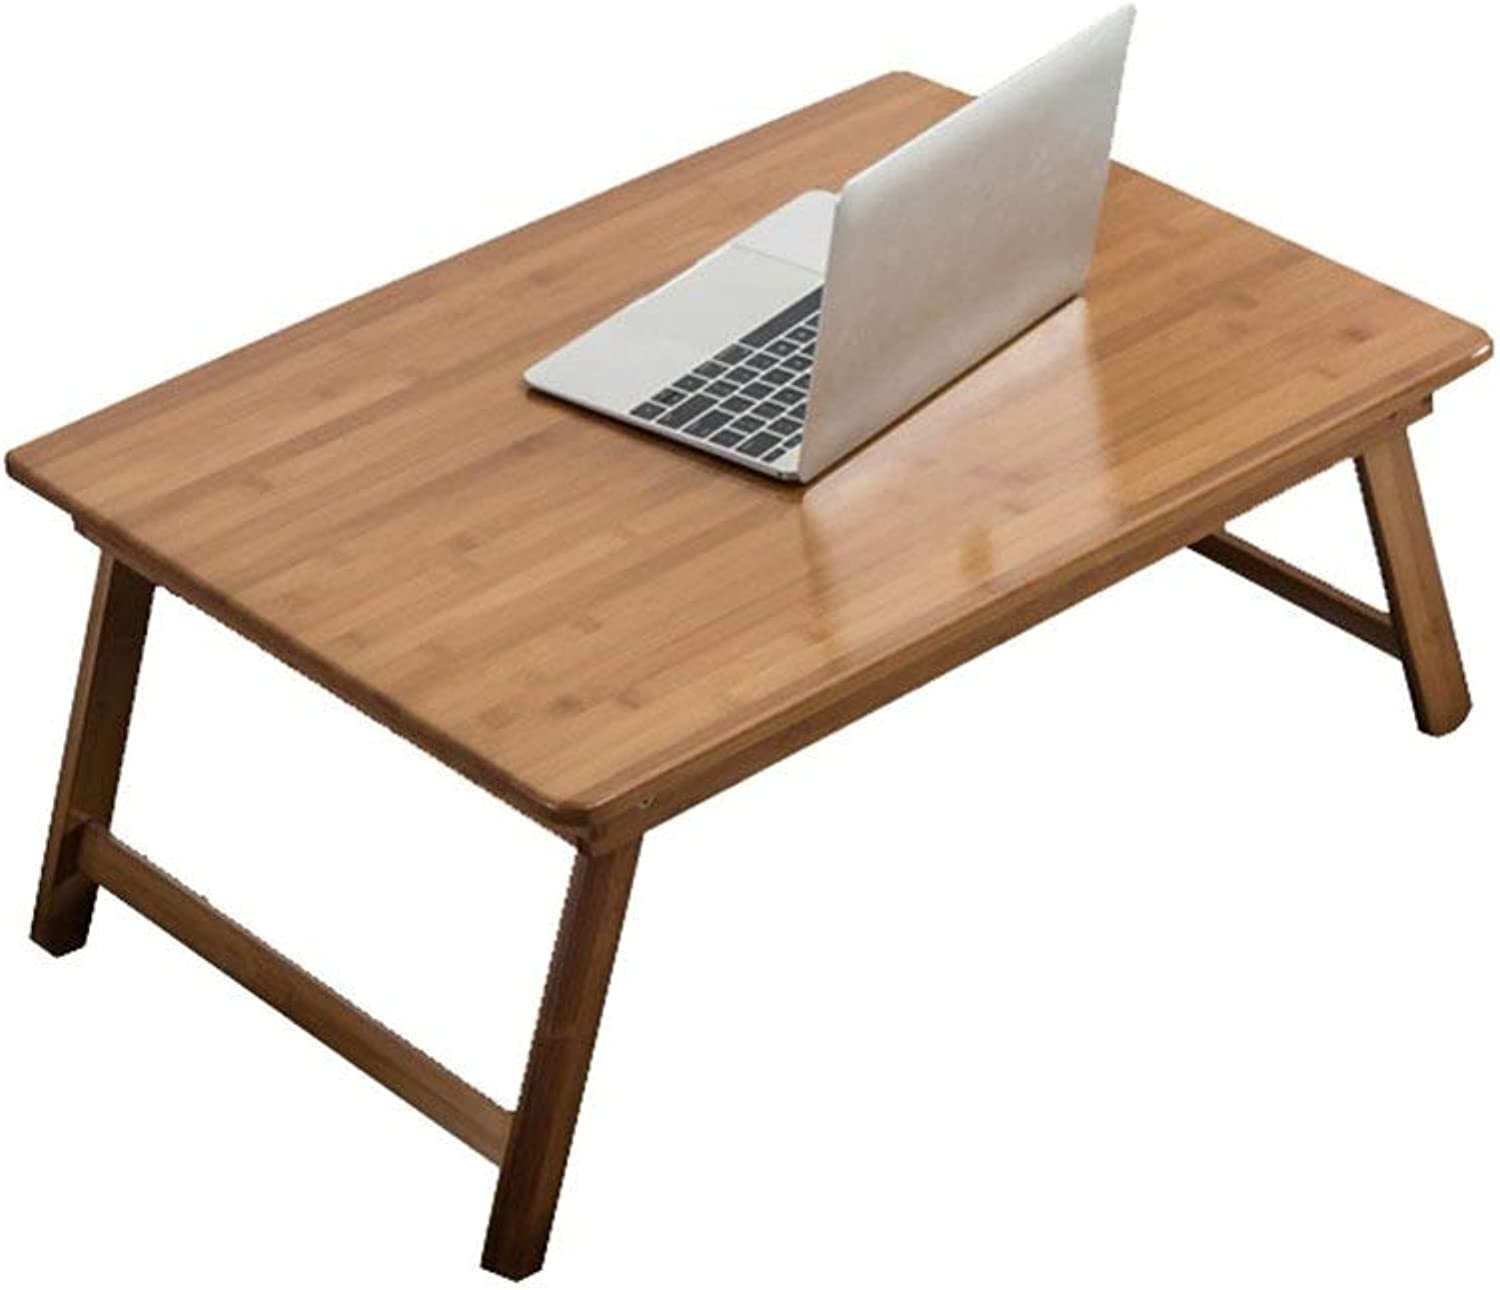 TINGTING Side Table desk End Bedside Wood Folding Table Dining Table Multi-function Computer Home Kitchen Desk Save Space bed brown (color   Wood, Size   70  40  30cm)